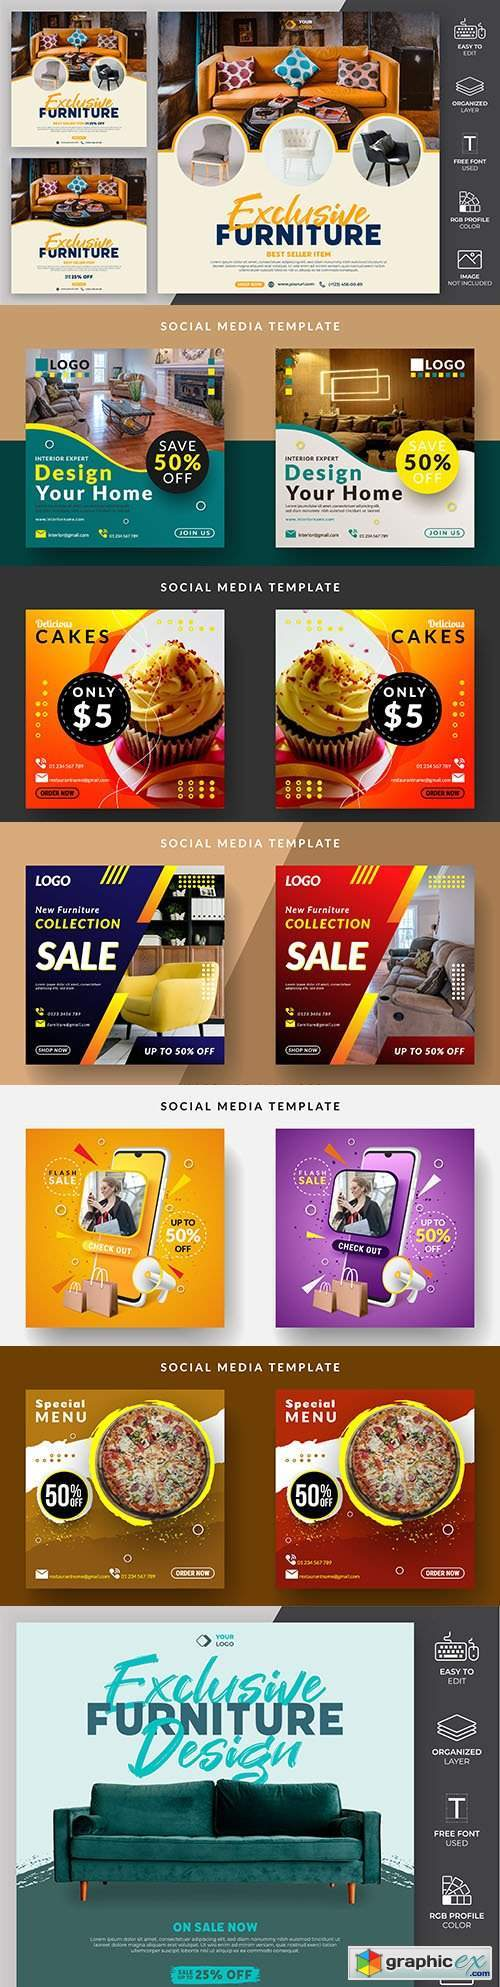 Social media message template to promote sale of item 8